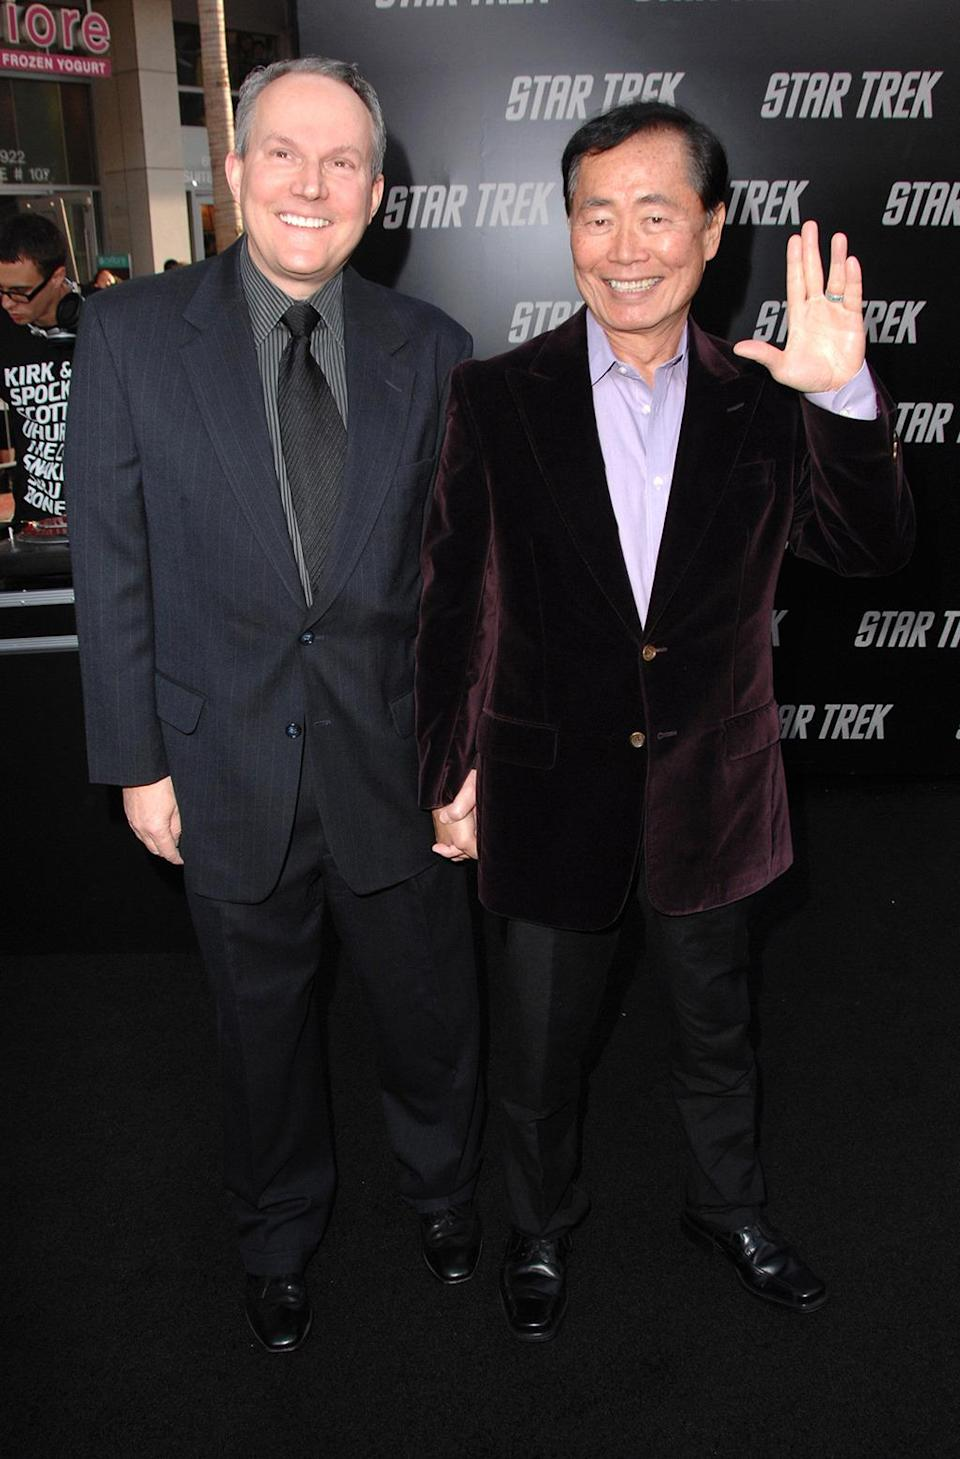 <p>George Takei and husband Brad Altman at the premiere, almost 20 years after Takei last stepped into the role as Hikaru Sulu. <i>(Photo: Steve Granitz/WireImage)</i></p>